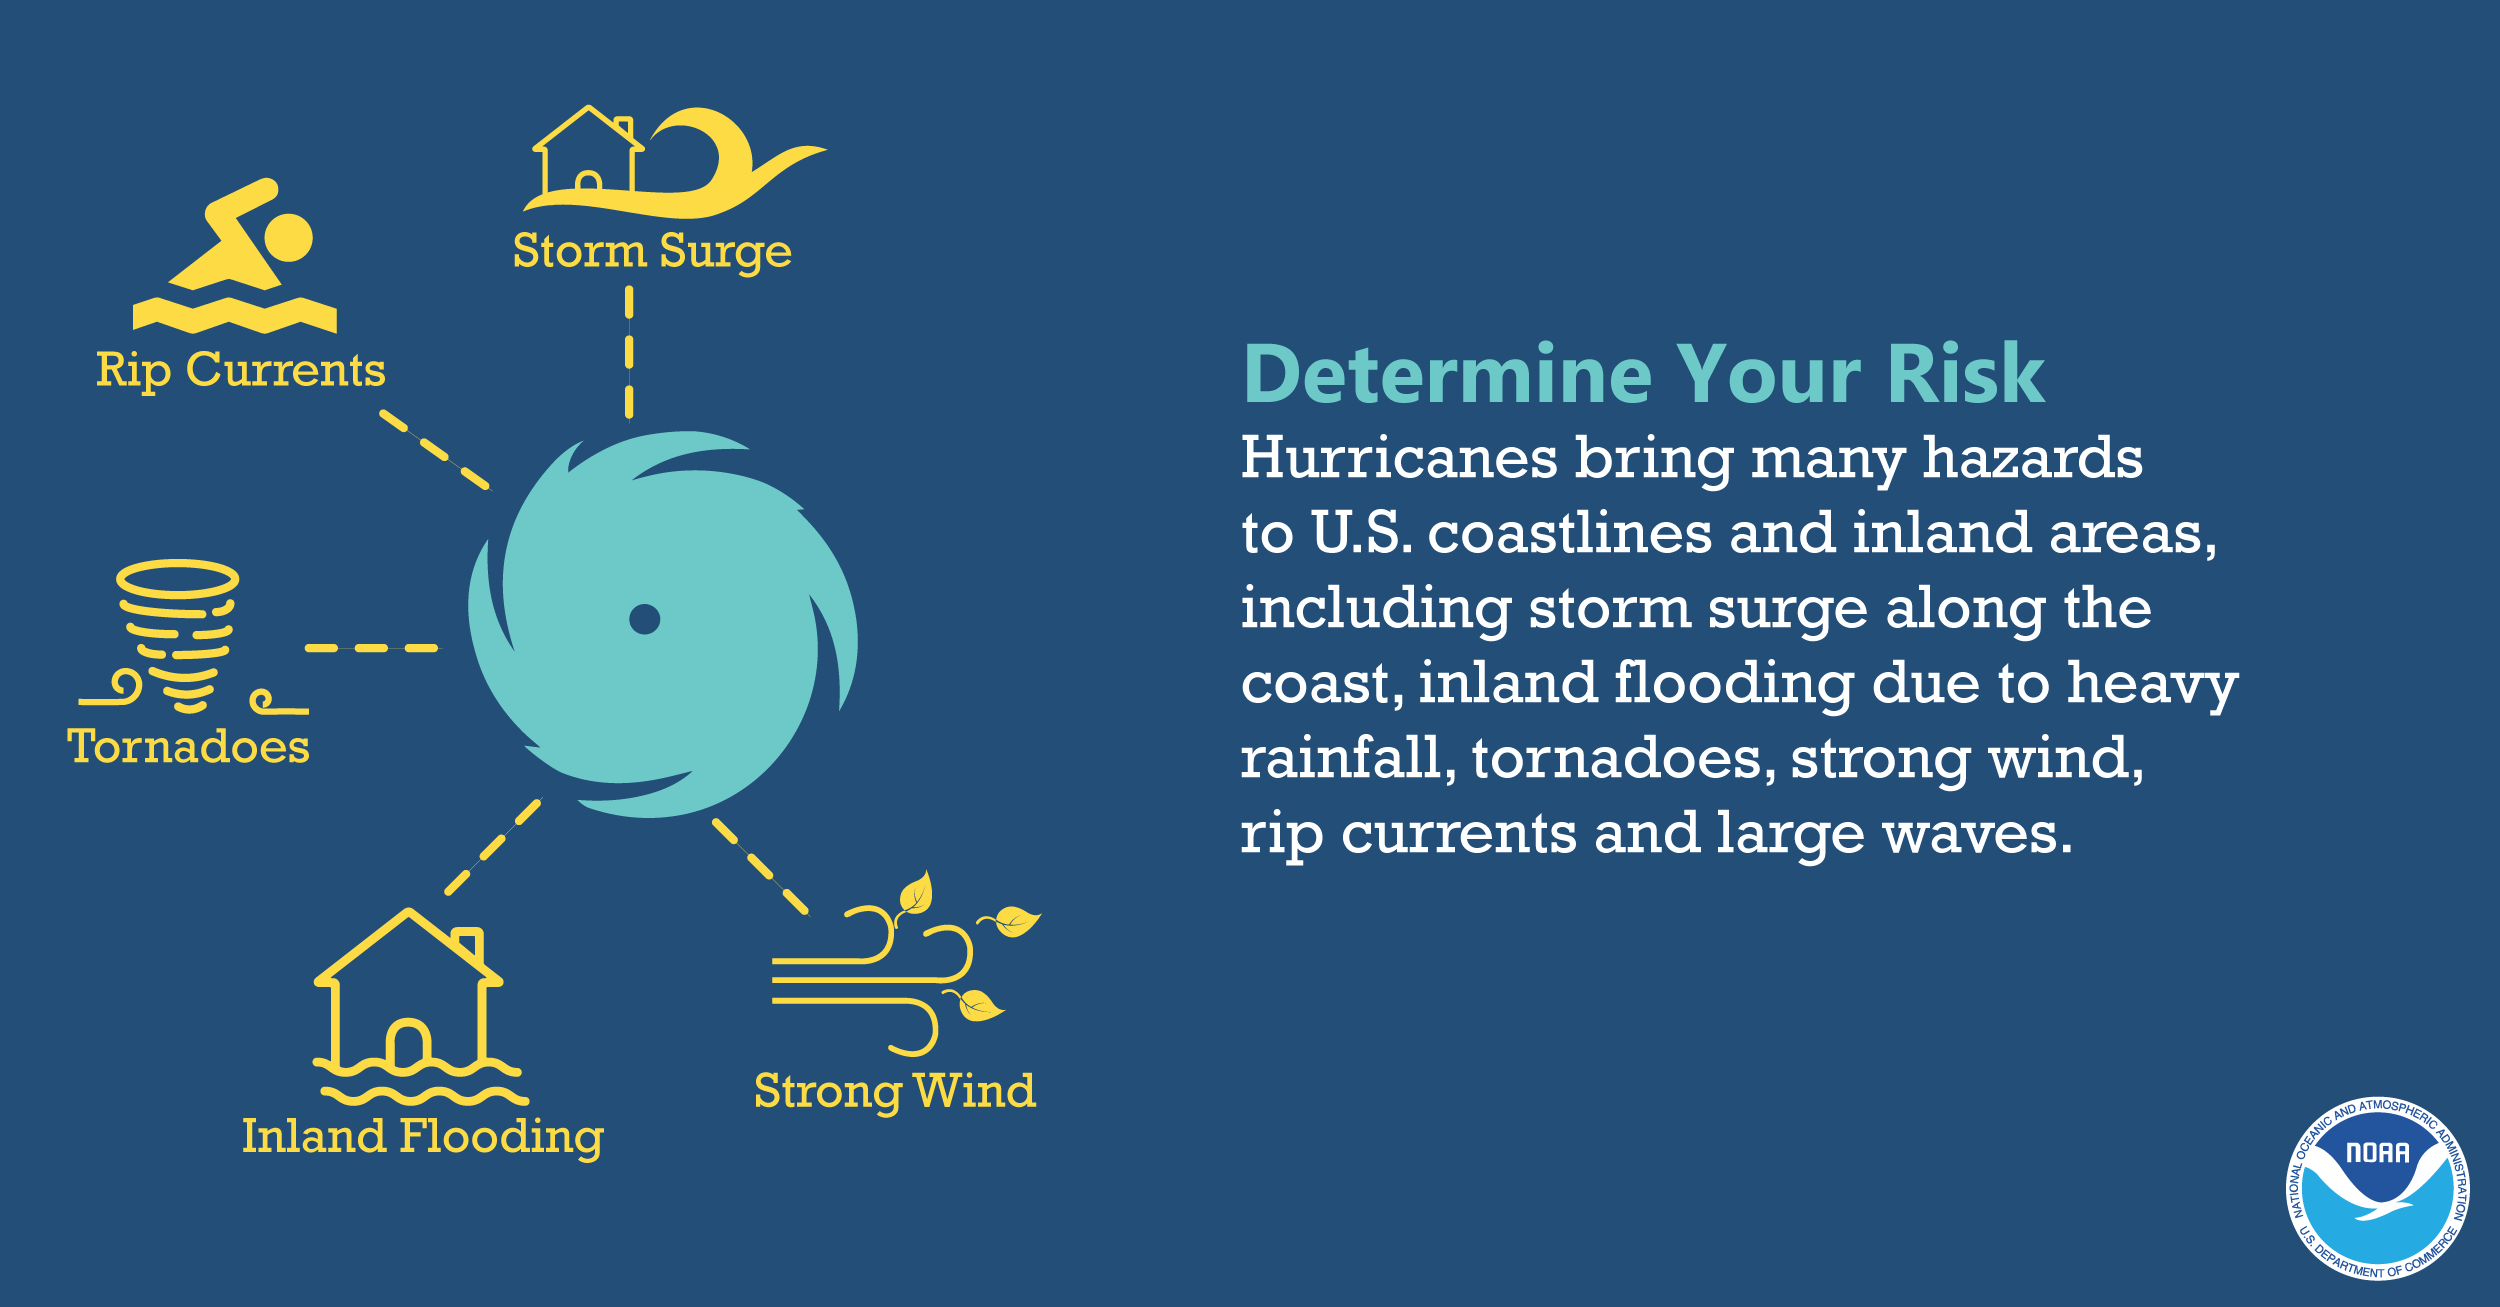 Determine Your Risk: Hurricanes bring many hazards to U.S. coastlines and inland areas, including storm surge along the coast, inland flooding due to heavy rainfall, tornadoes, strong wind, rip currents and large waves.